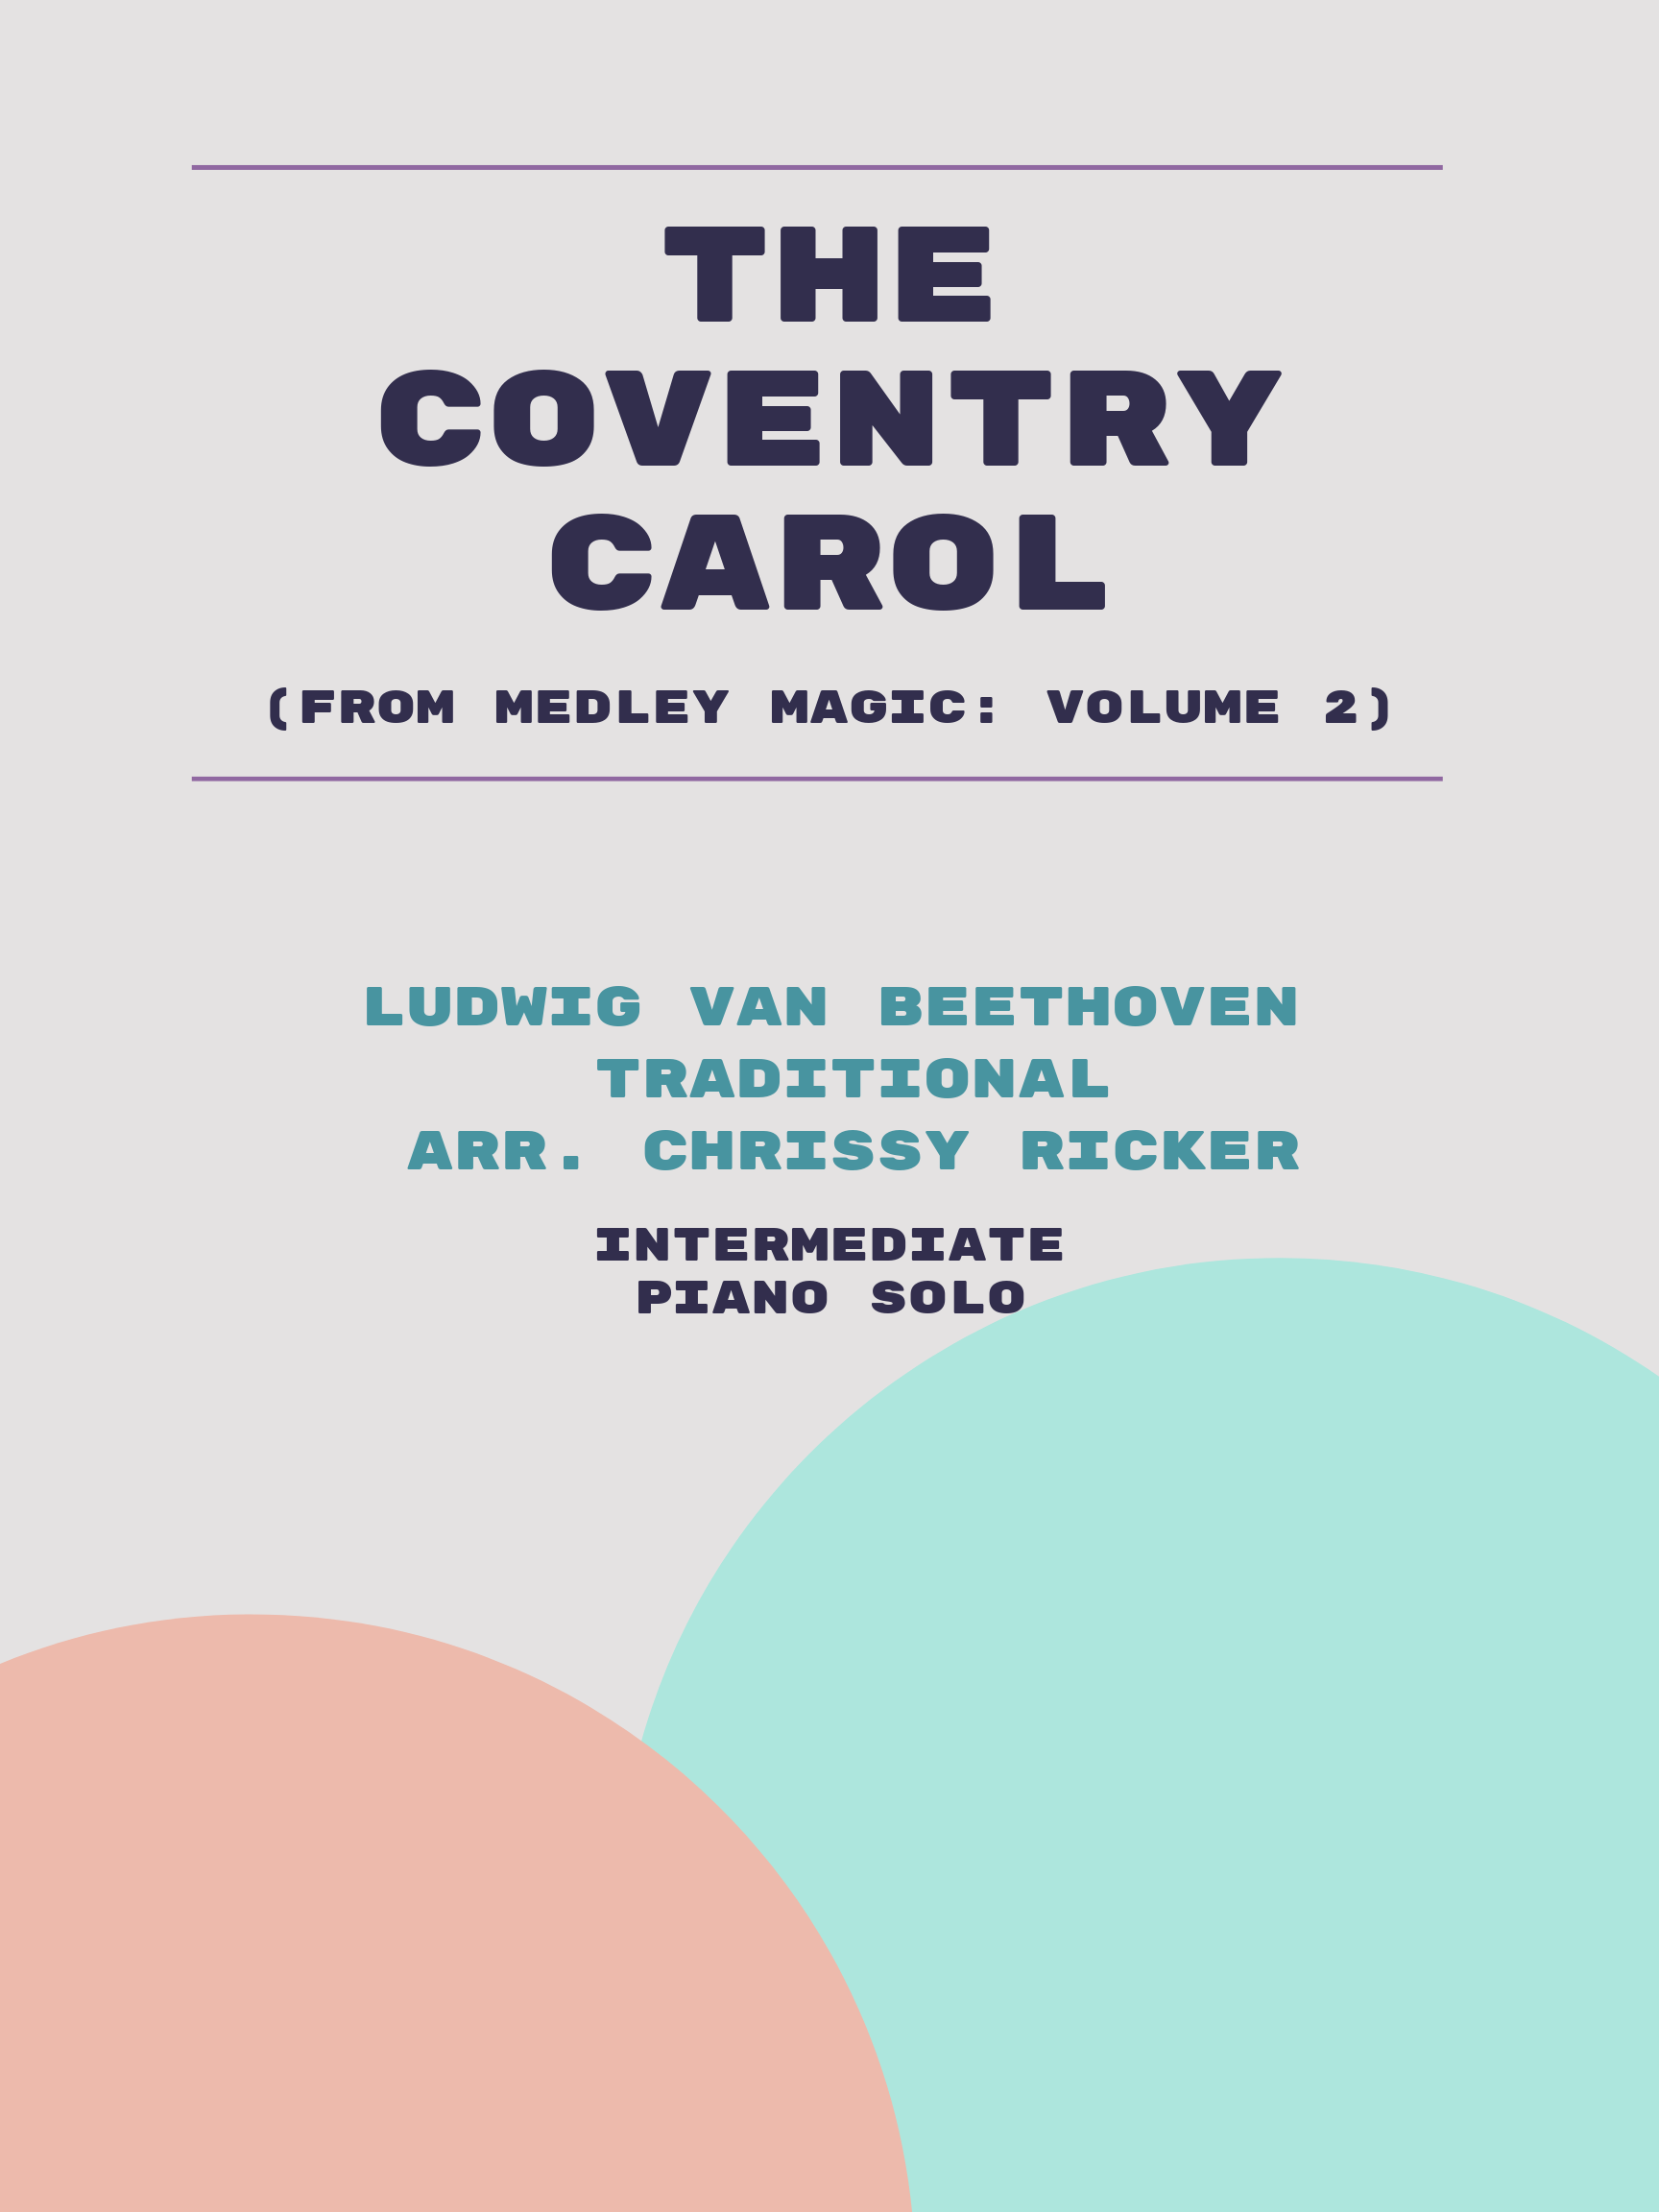 The Coventry Carol by Ludwig van Beethoven, Traditional